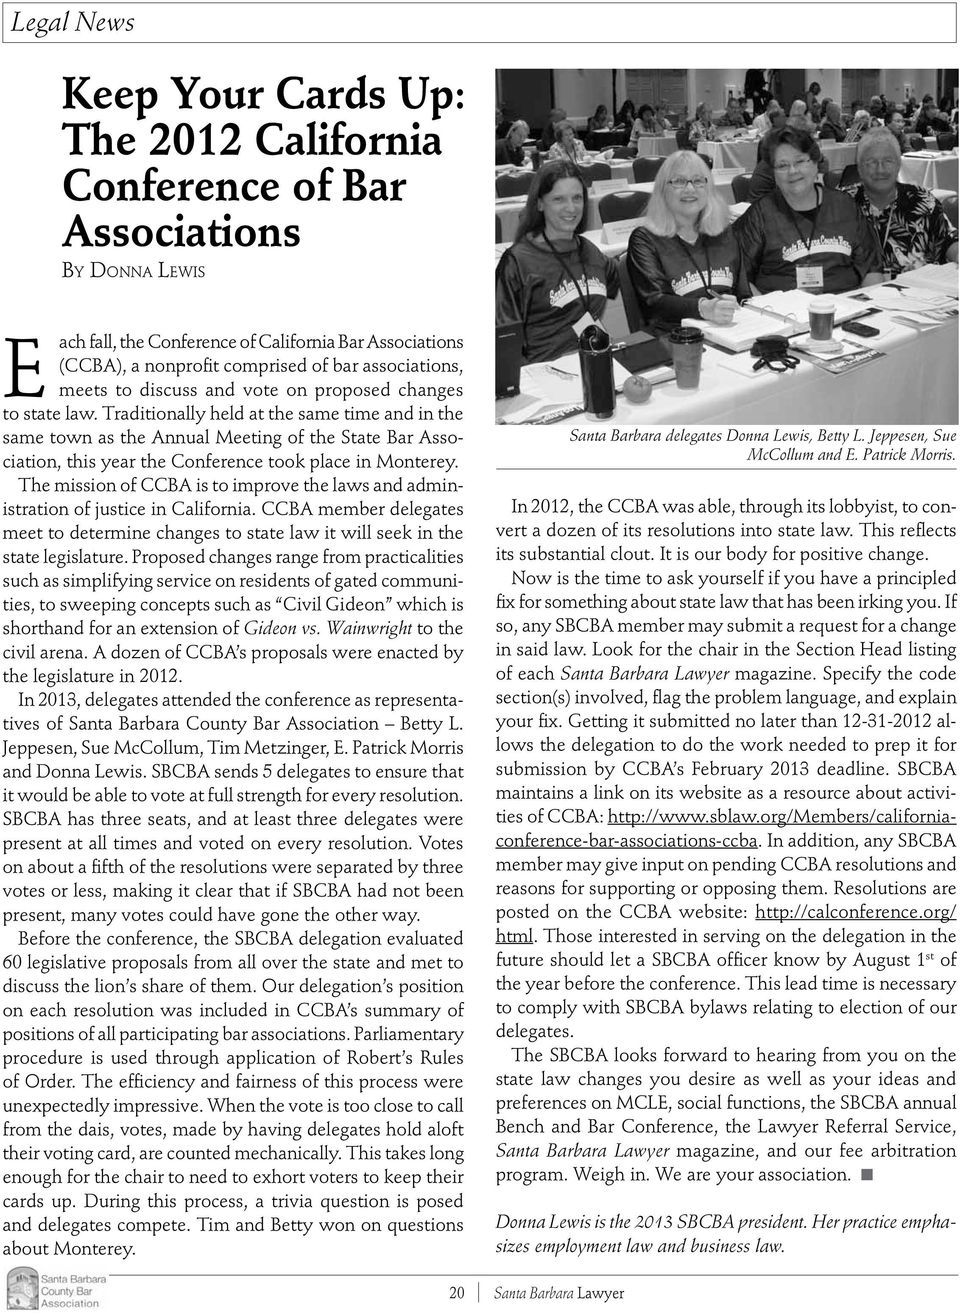 Traditionally held at the same time and in the same town as the Annual Meeting of the State Bar Association, this year the Conference took place in Monterey.